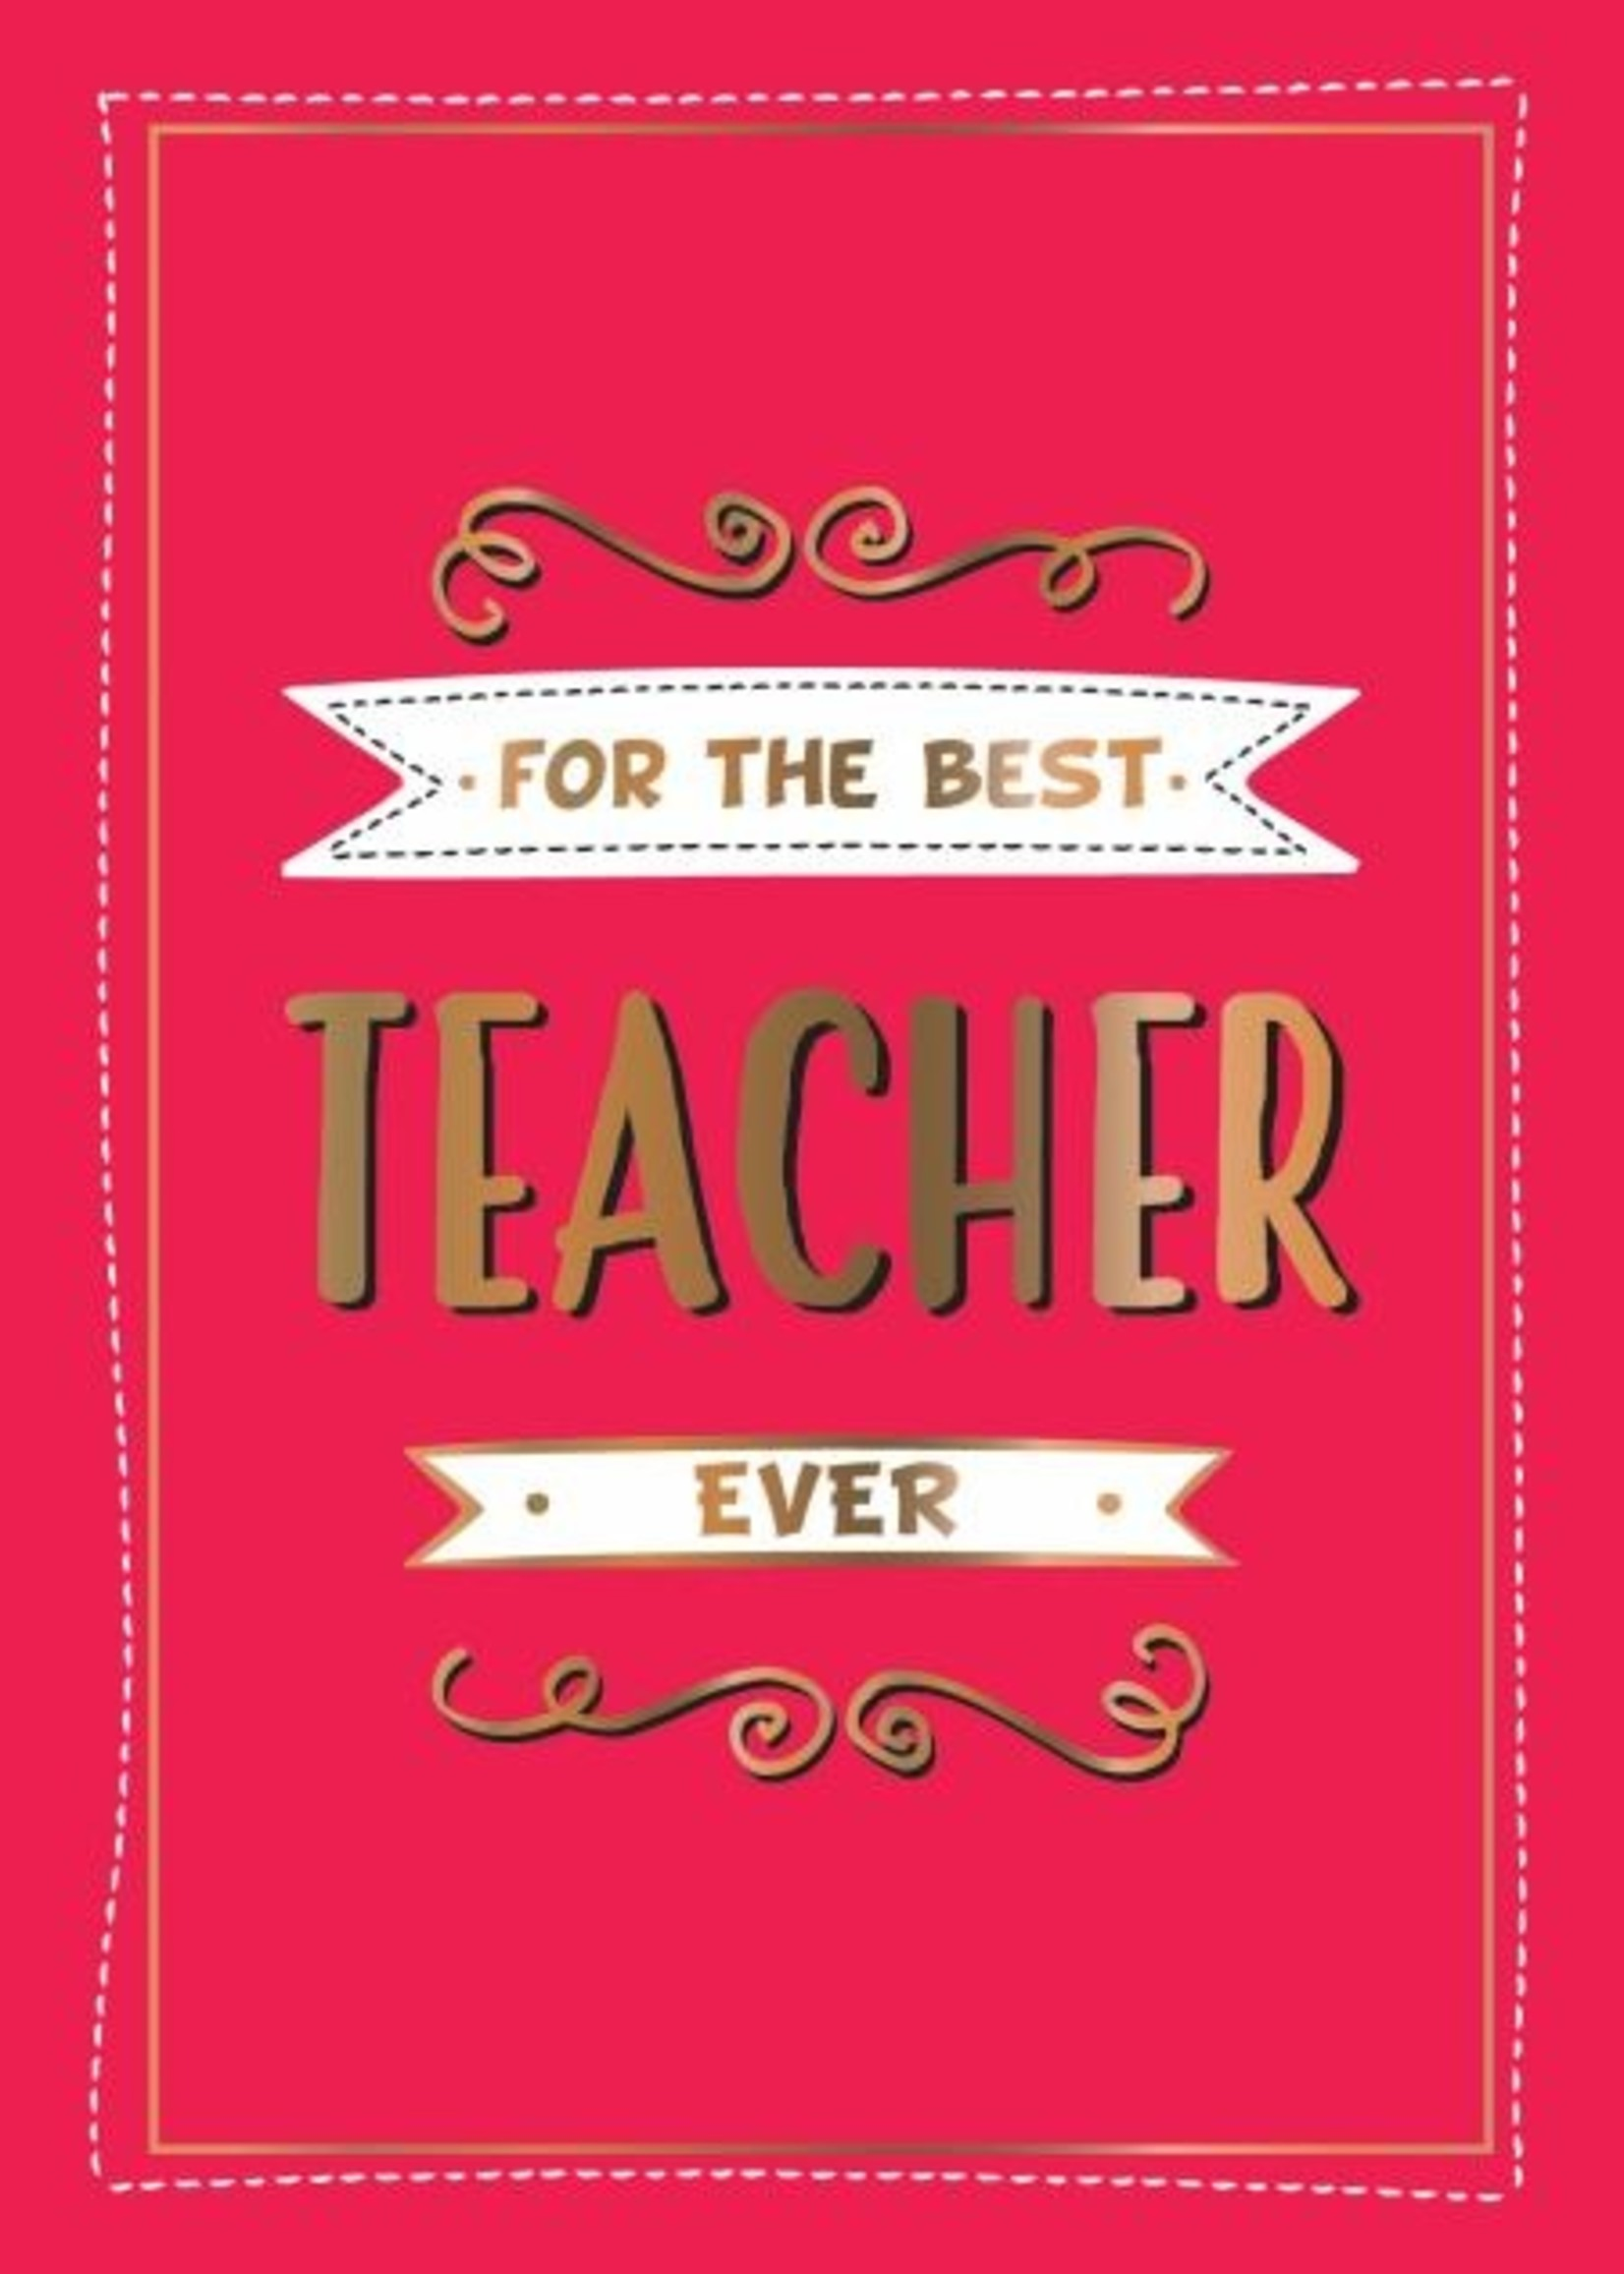 hachette book group hachette for the best teacher ever book